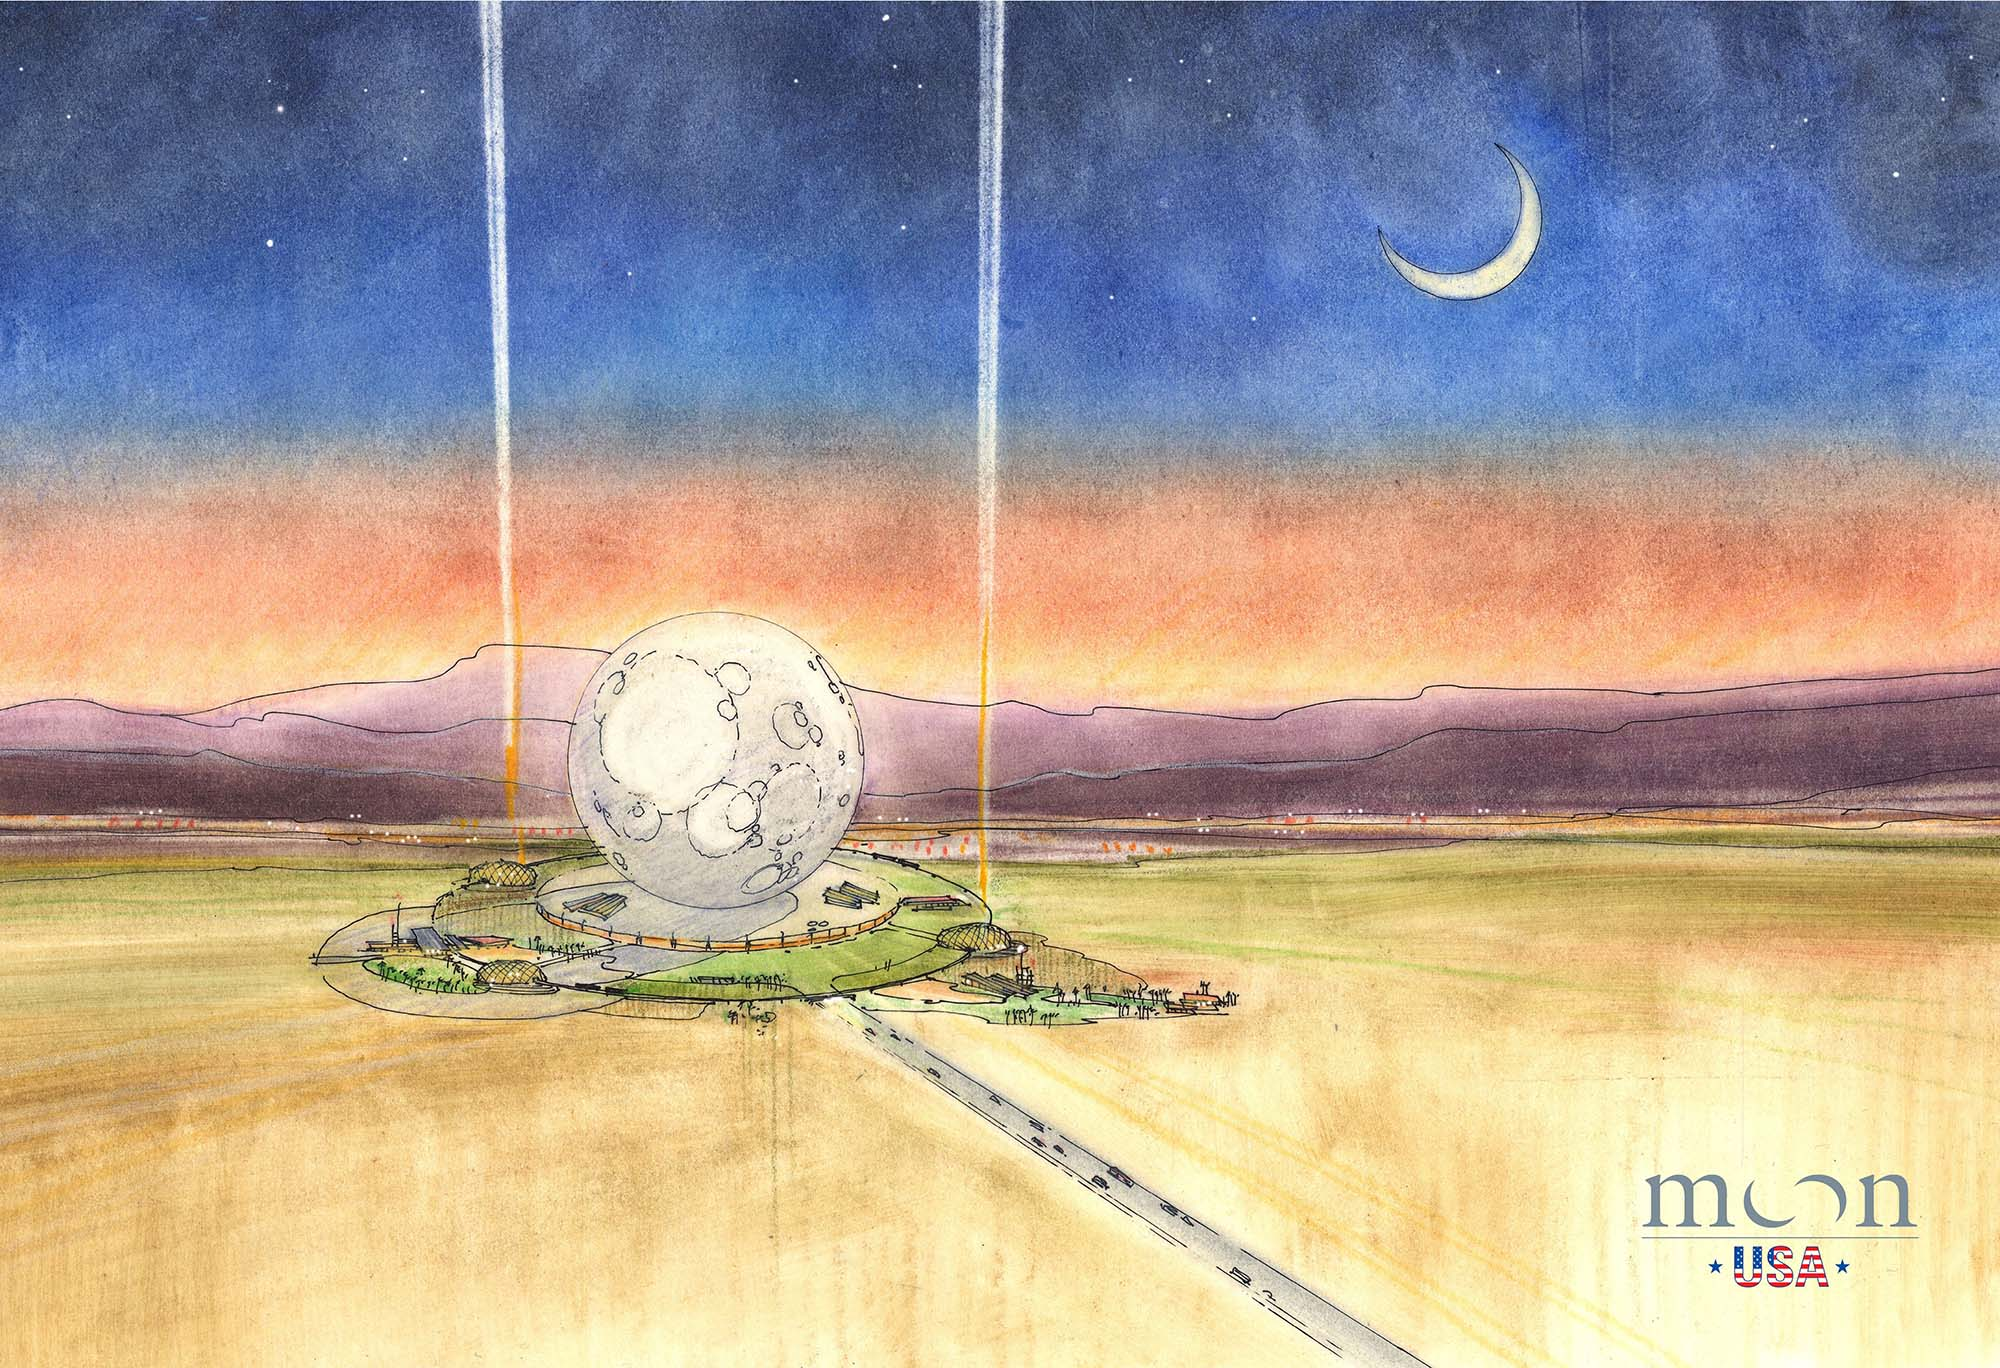 A rendering of the giant lunar sphere planned for this moon-themed resort.